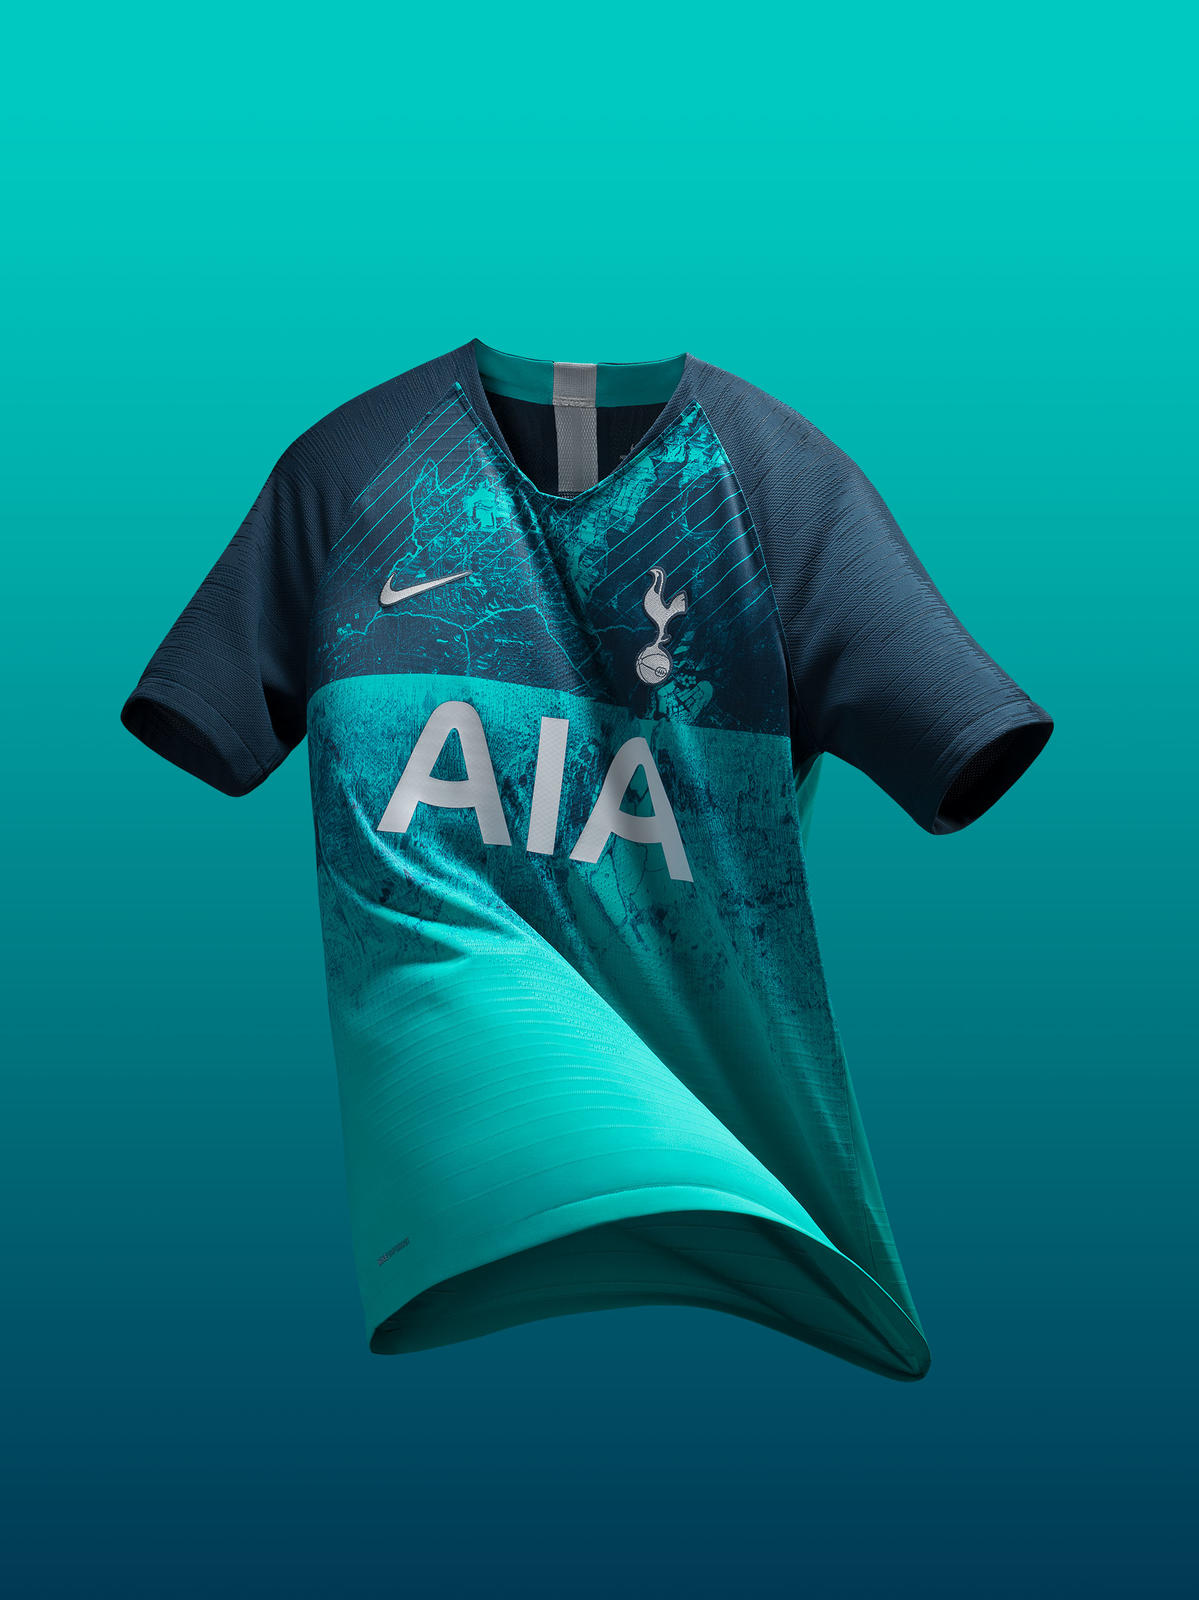 741f6fff4e6 Tottenham Hotspur Goes Full N17 With Its 2018-19 Third Kit - Nike News